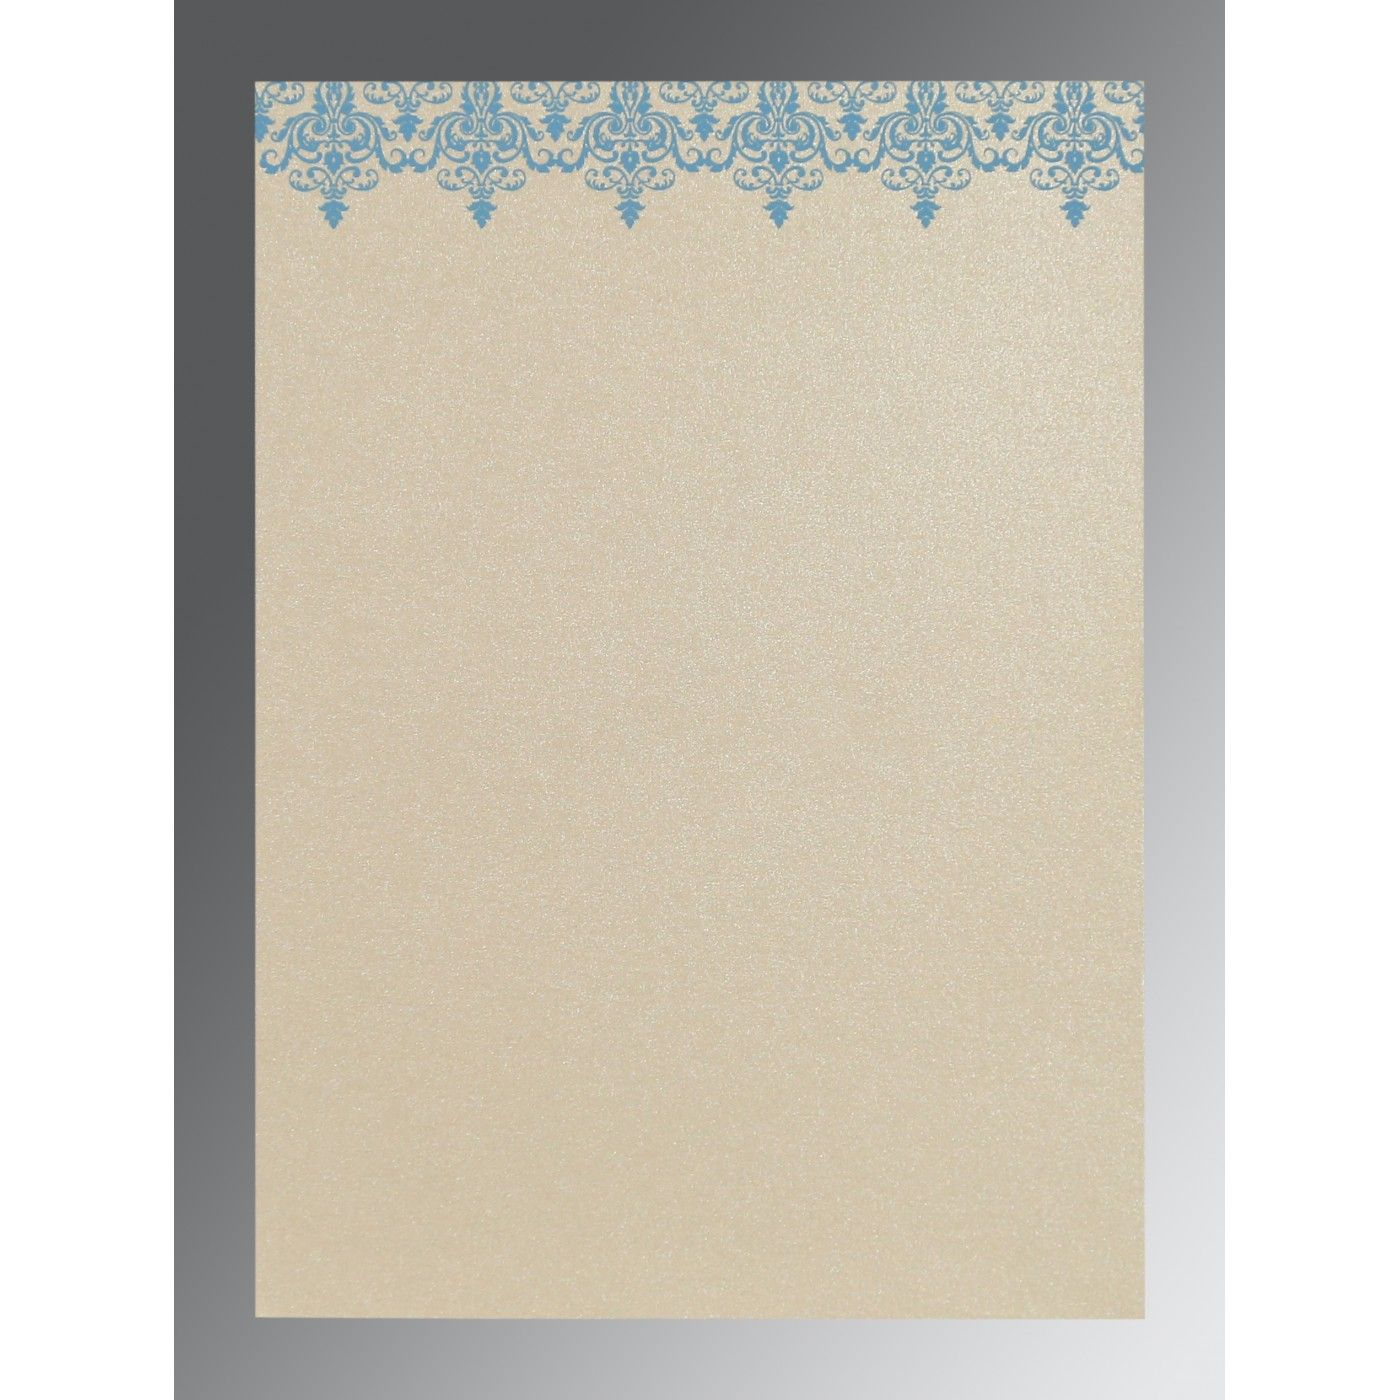 TURQUOISE SHIMMERY SCREEN PRINTED WEDDING CARD : CD-8244F - IndianWeddingCards